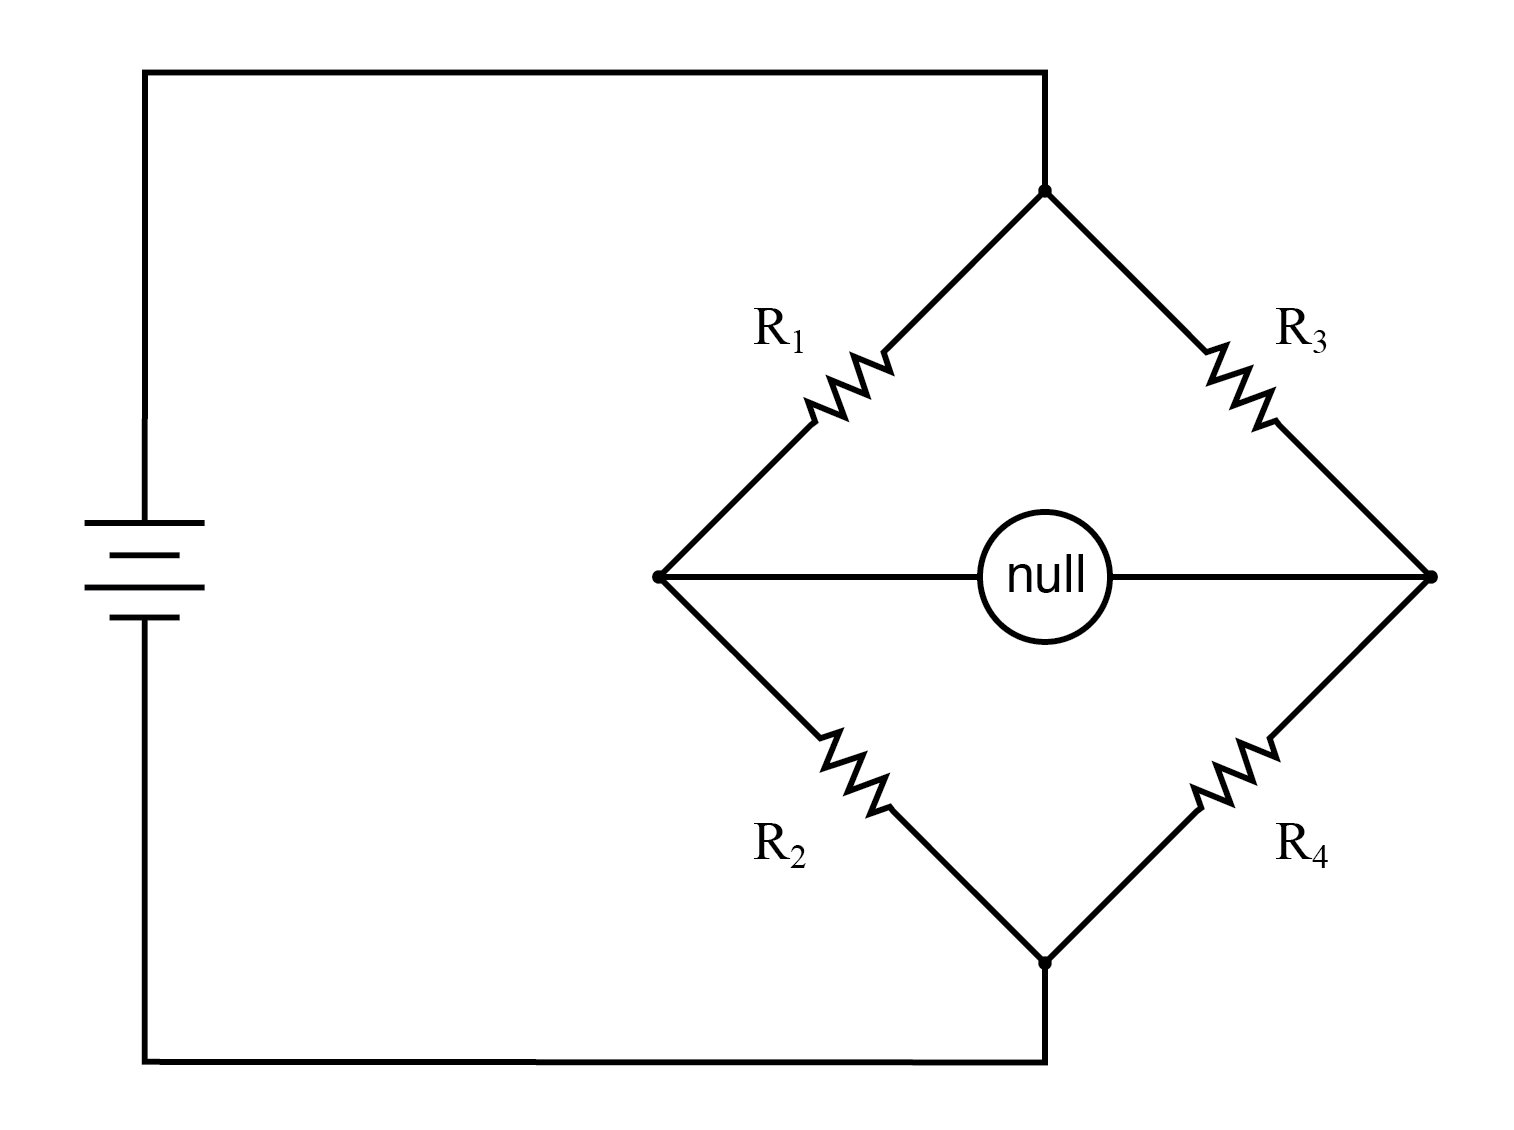 hight resolution of a balanced bridge shows a null or minimum reading on the indicator